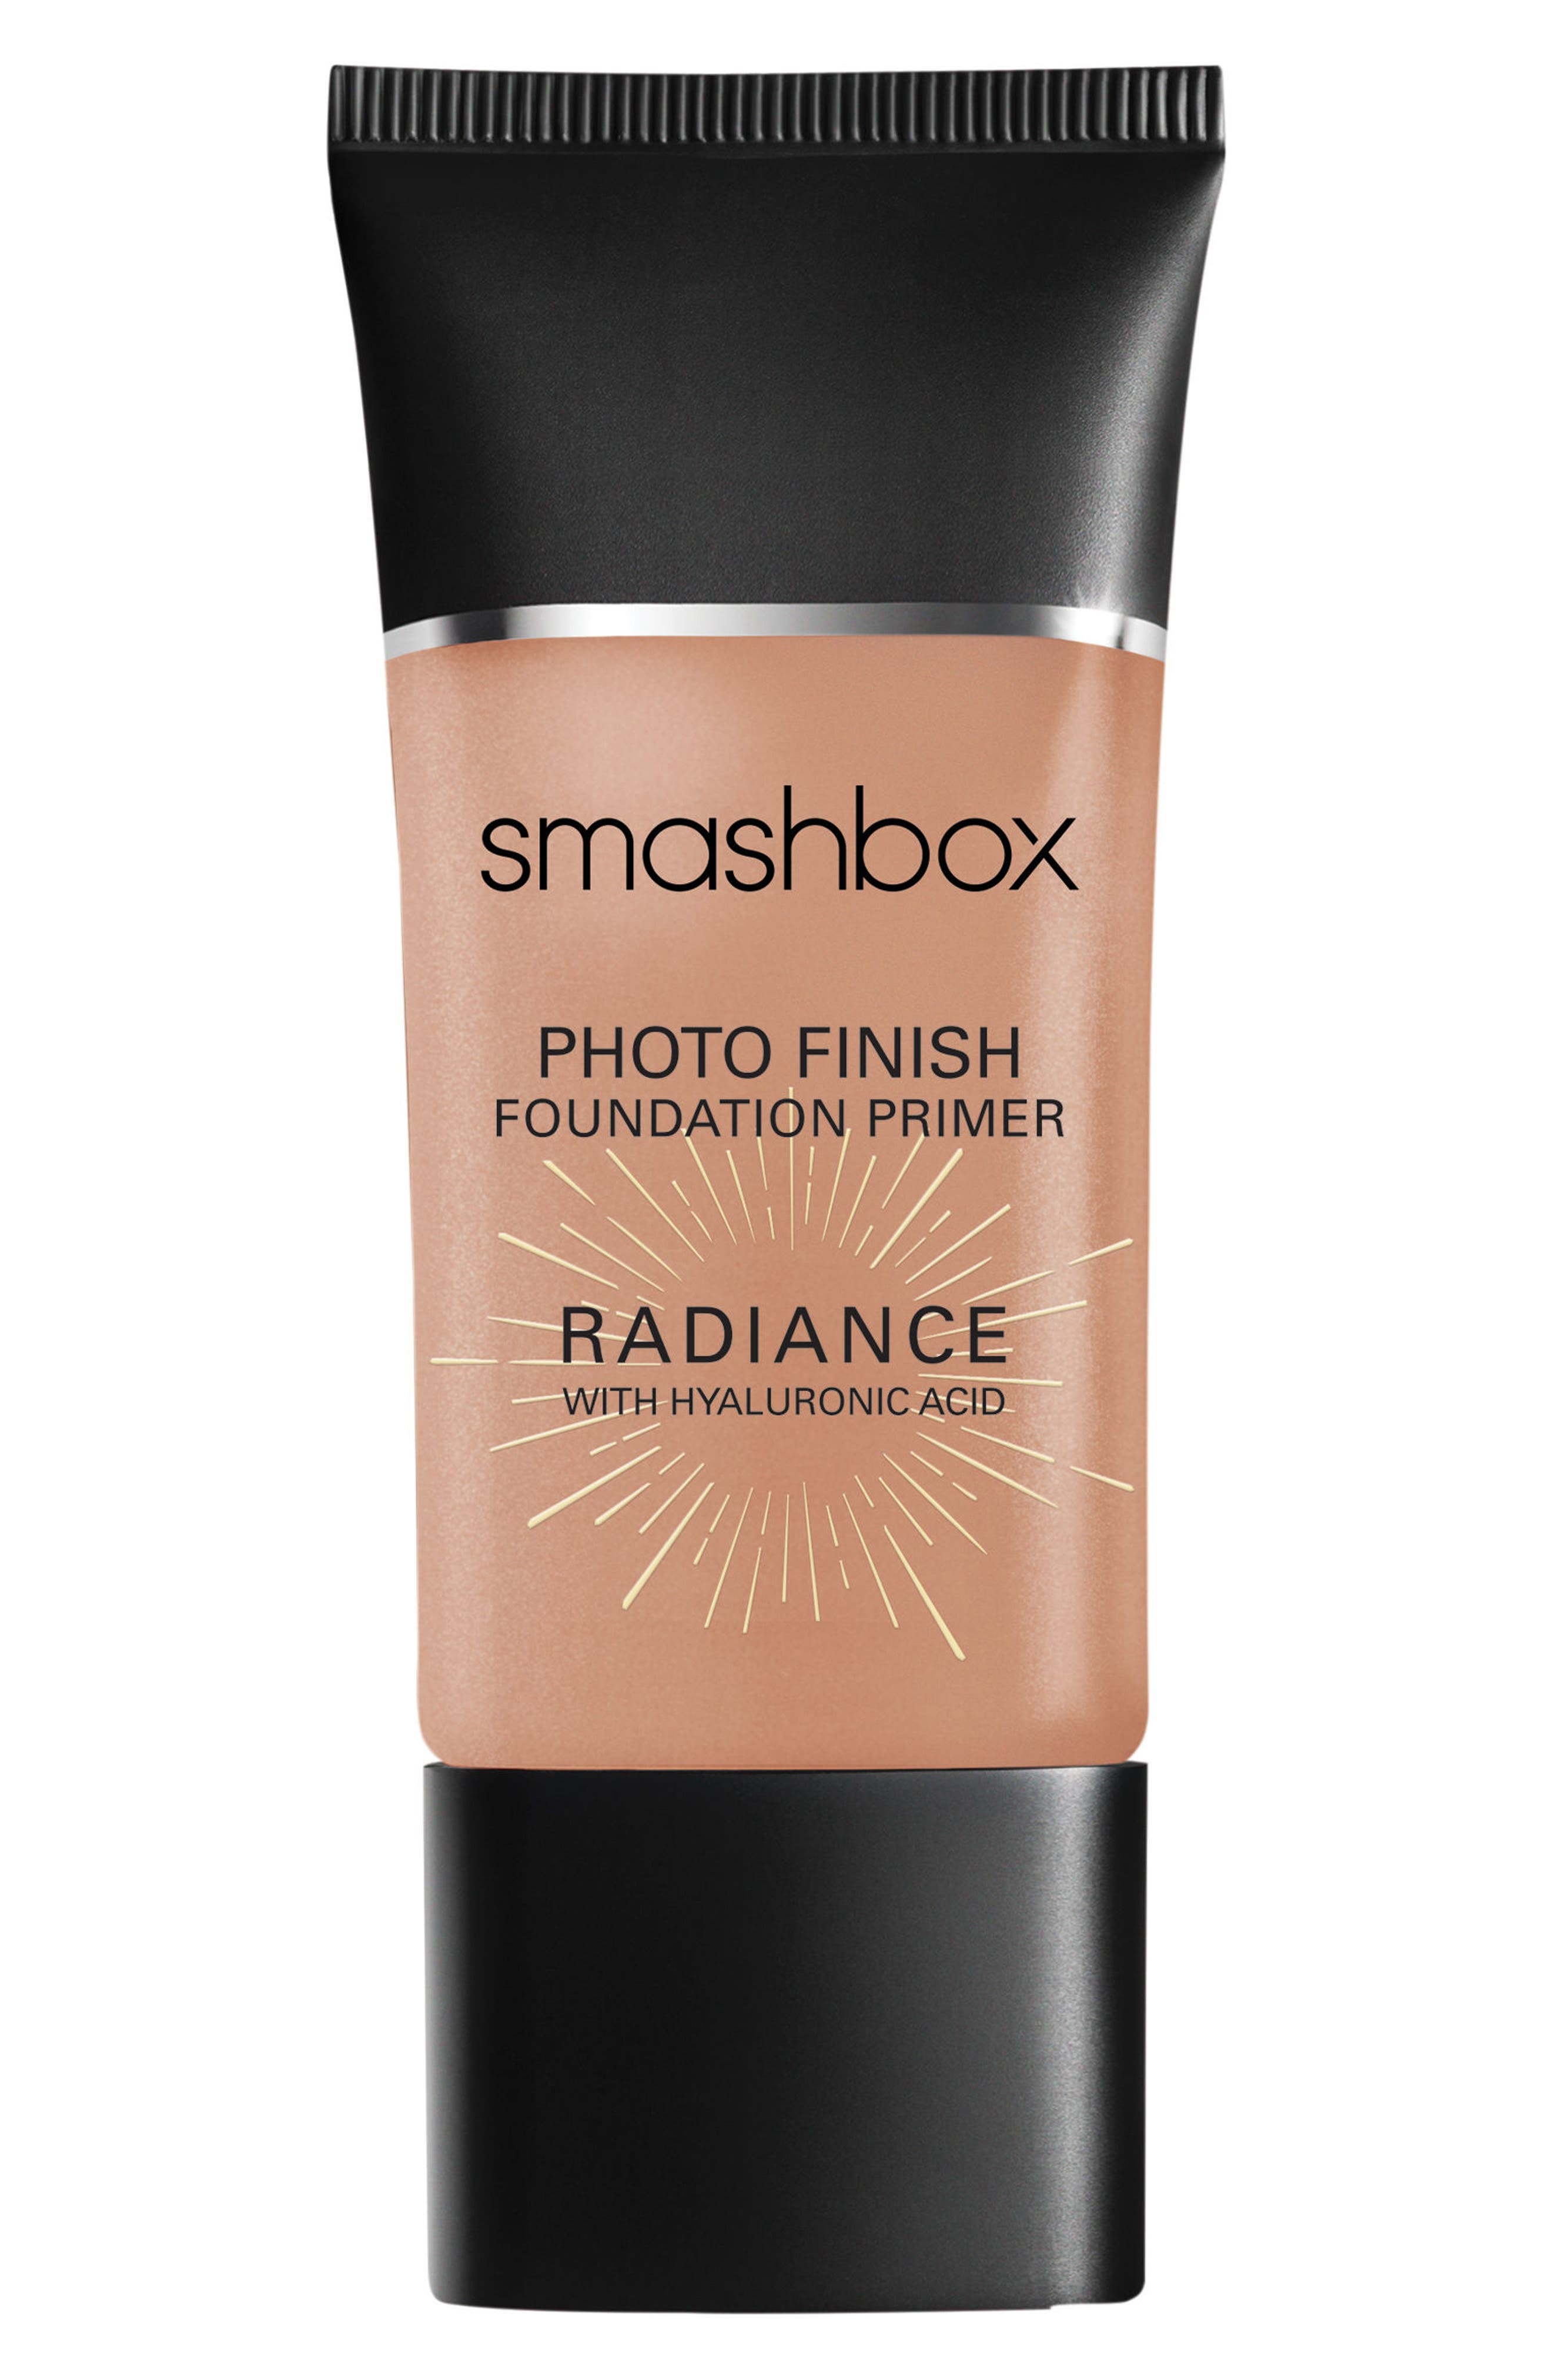 Alternate Image 1 Selected - Smashbox Photo Finish Foundation Primer Radiance with Hyaluronic Acid